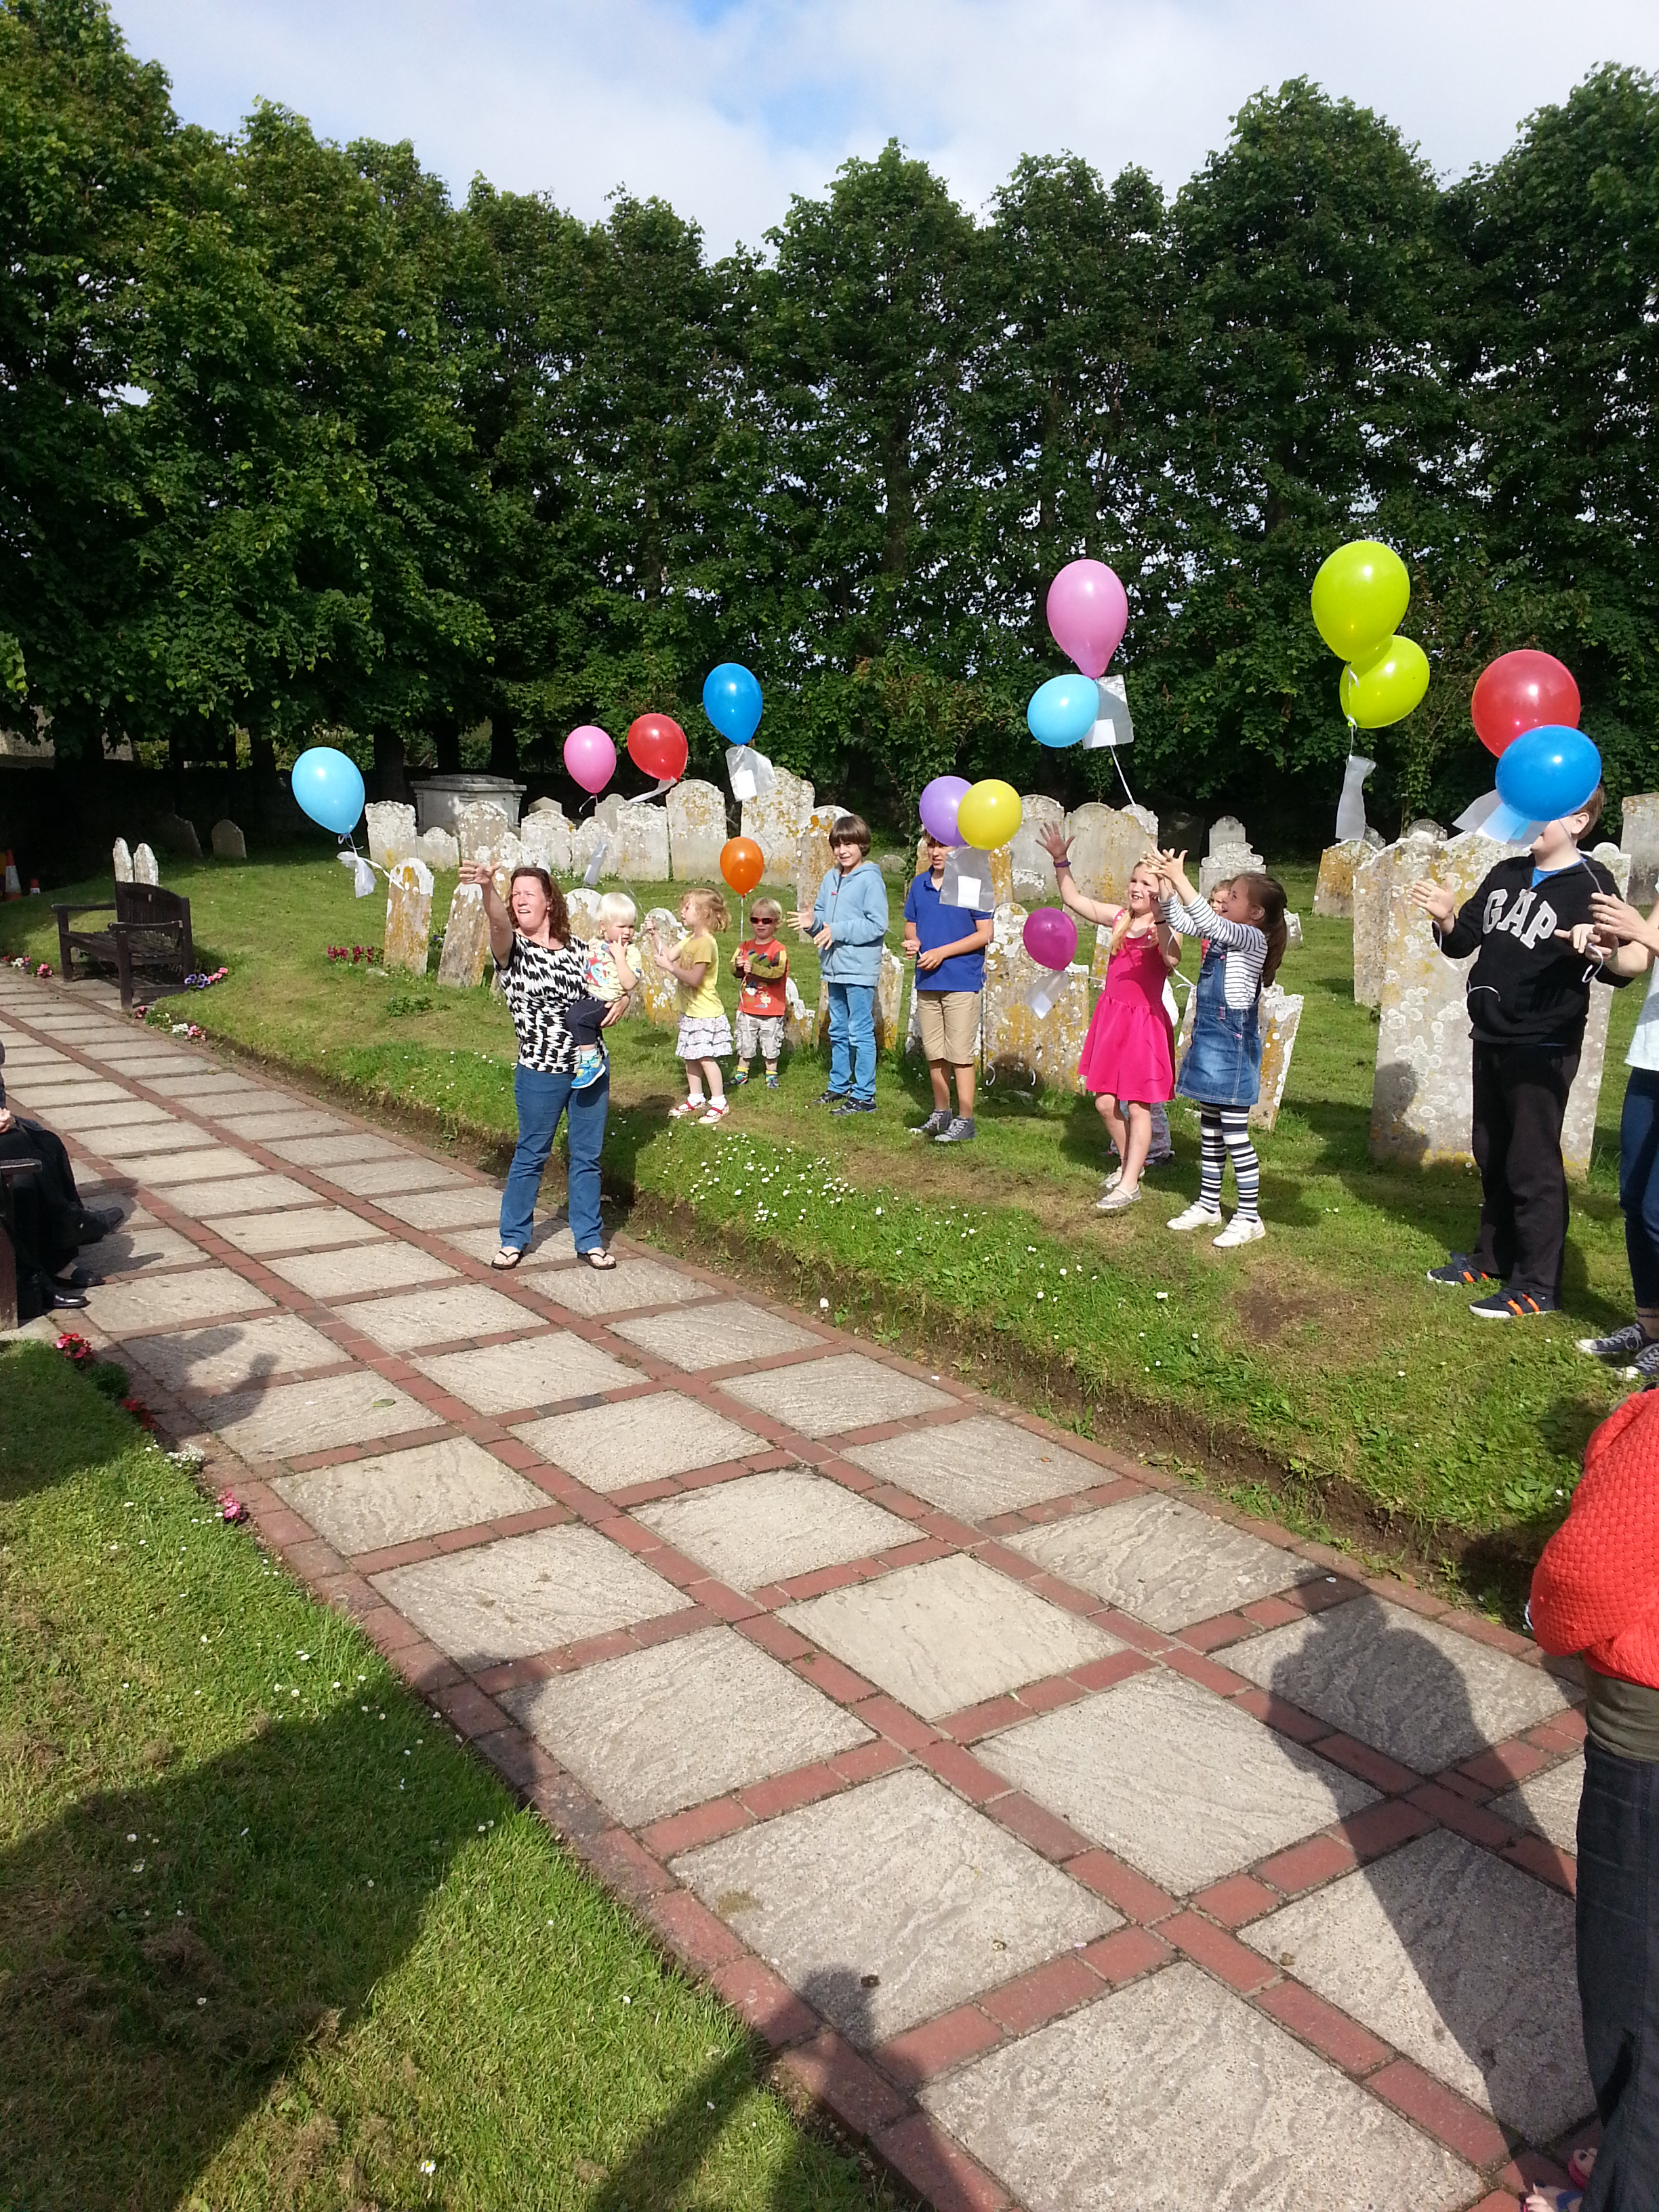 Ascension Day Balloons – 29th May 2014